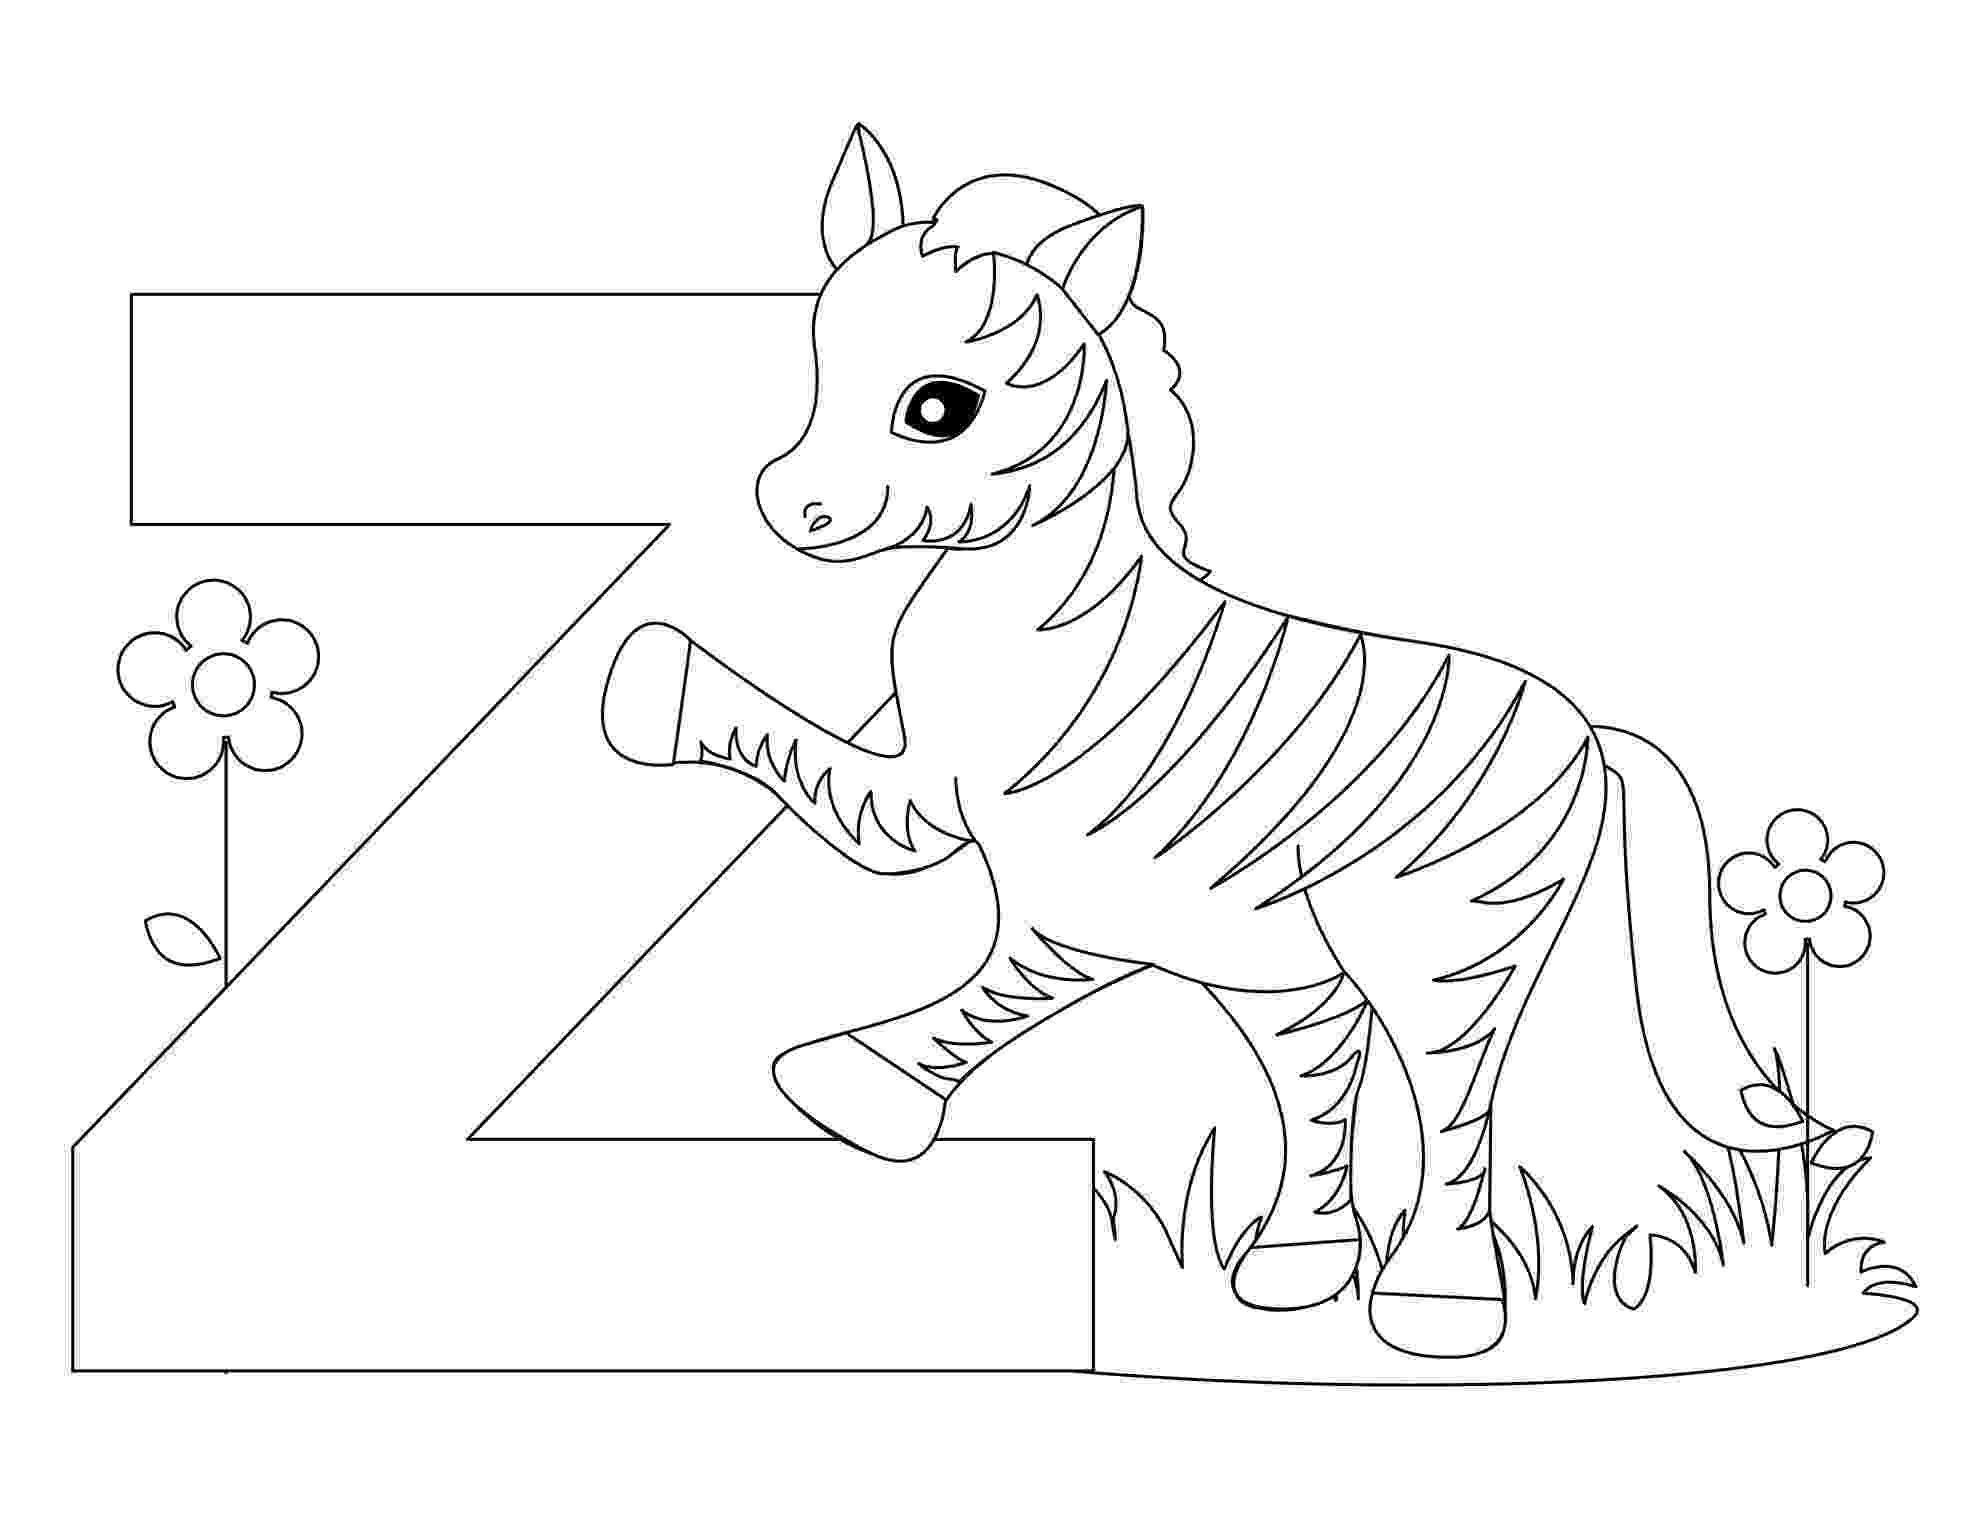 coloring pages of letters free printable alphabet coloring pages for kids best pages letters of coloring